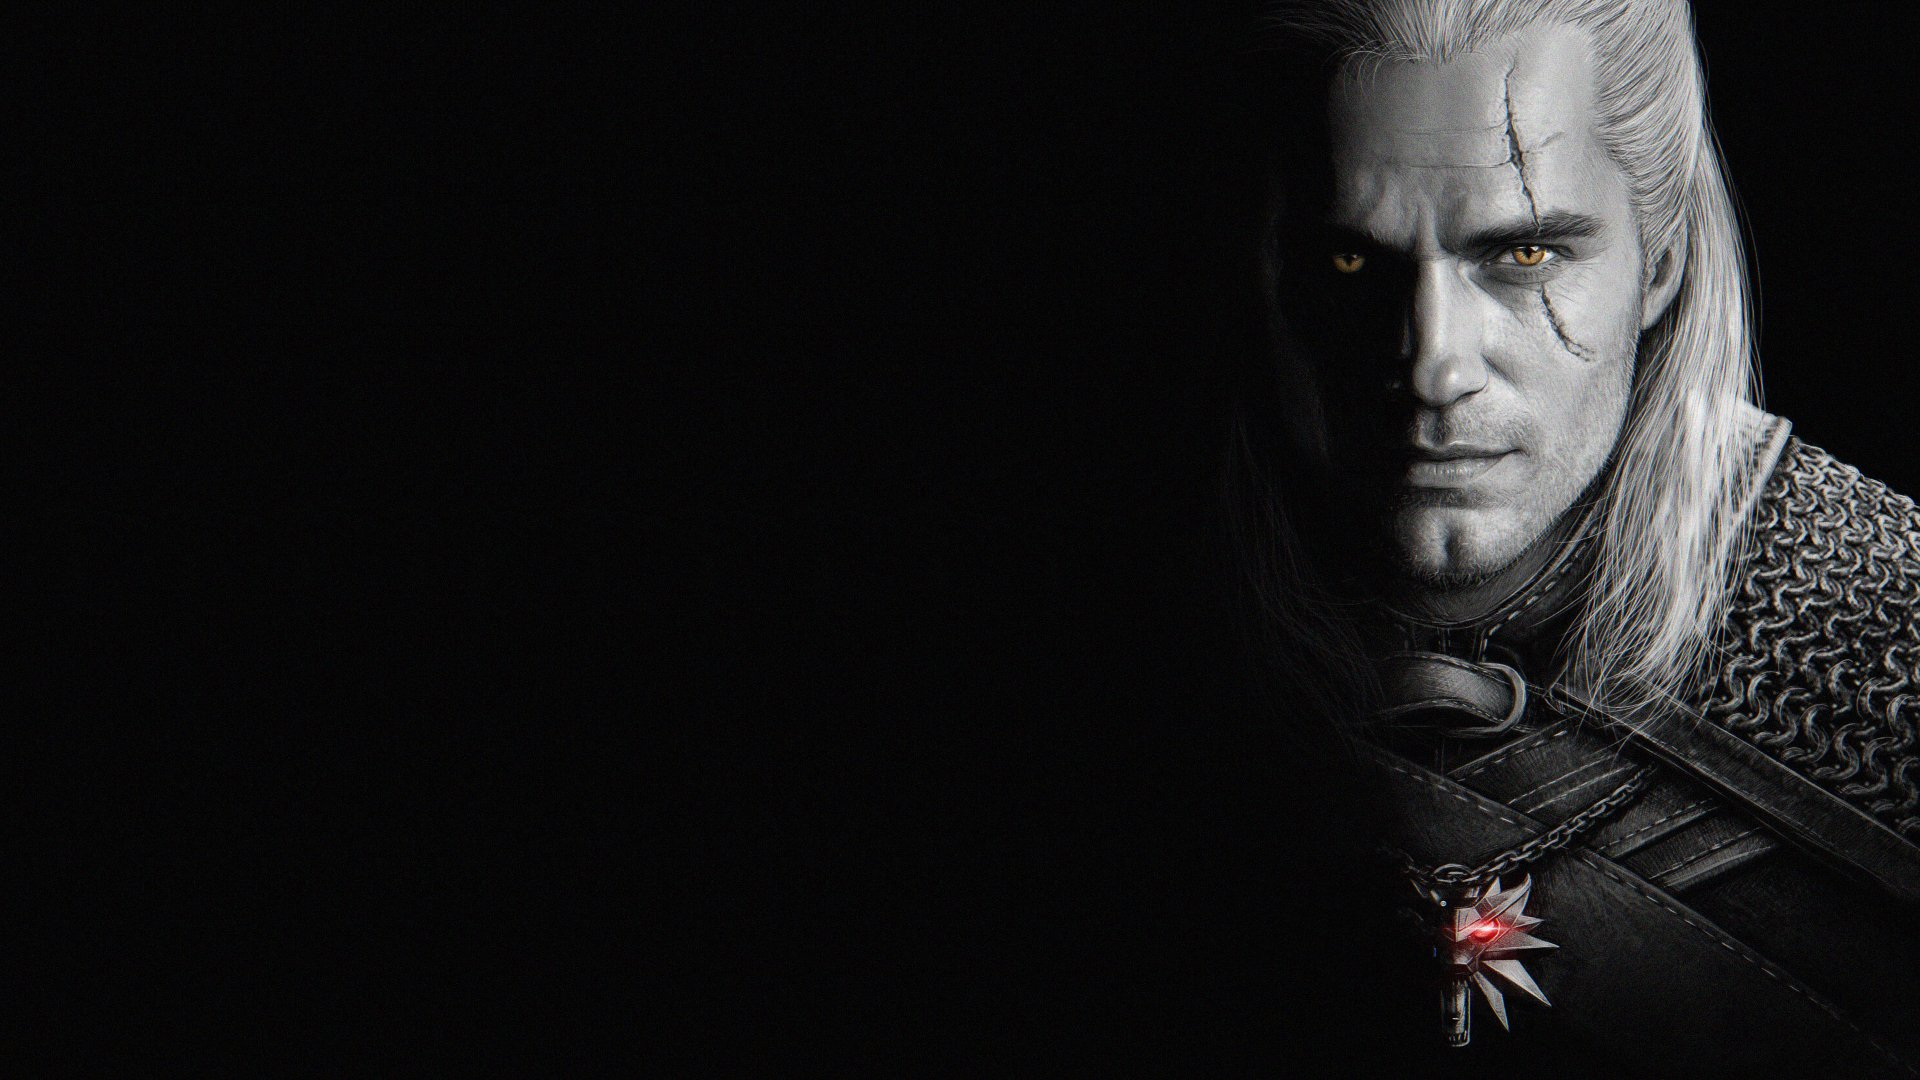 45 The Witcher Hd Wallpapers Background Images Wallpaper Abyss